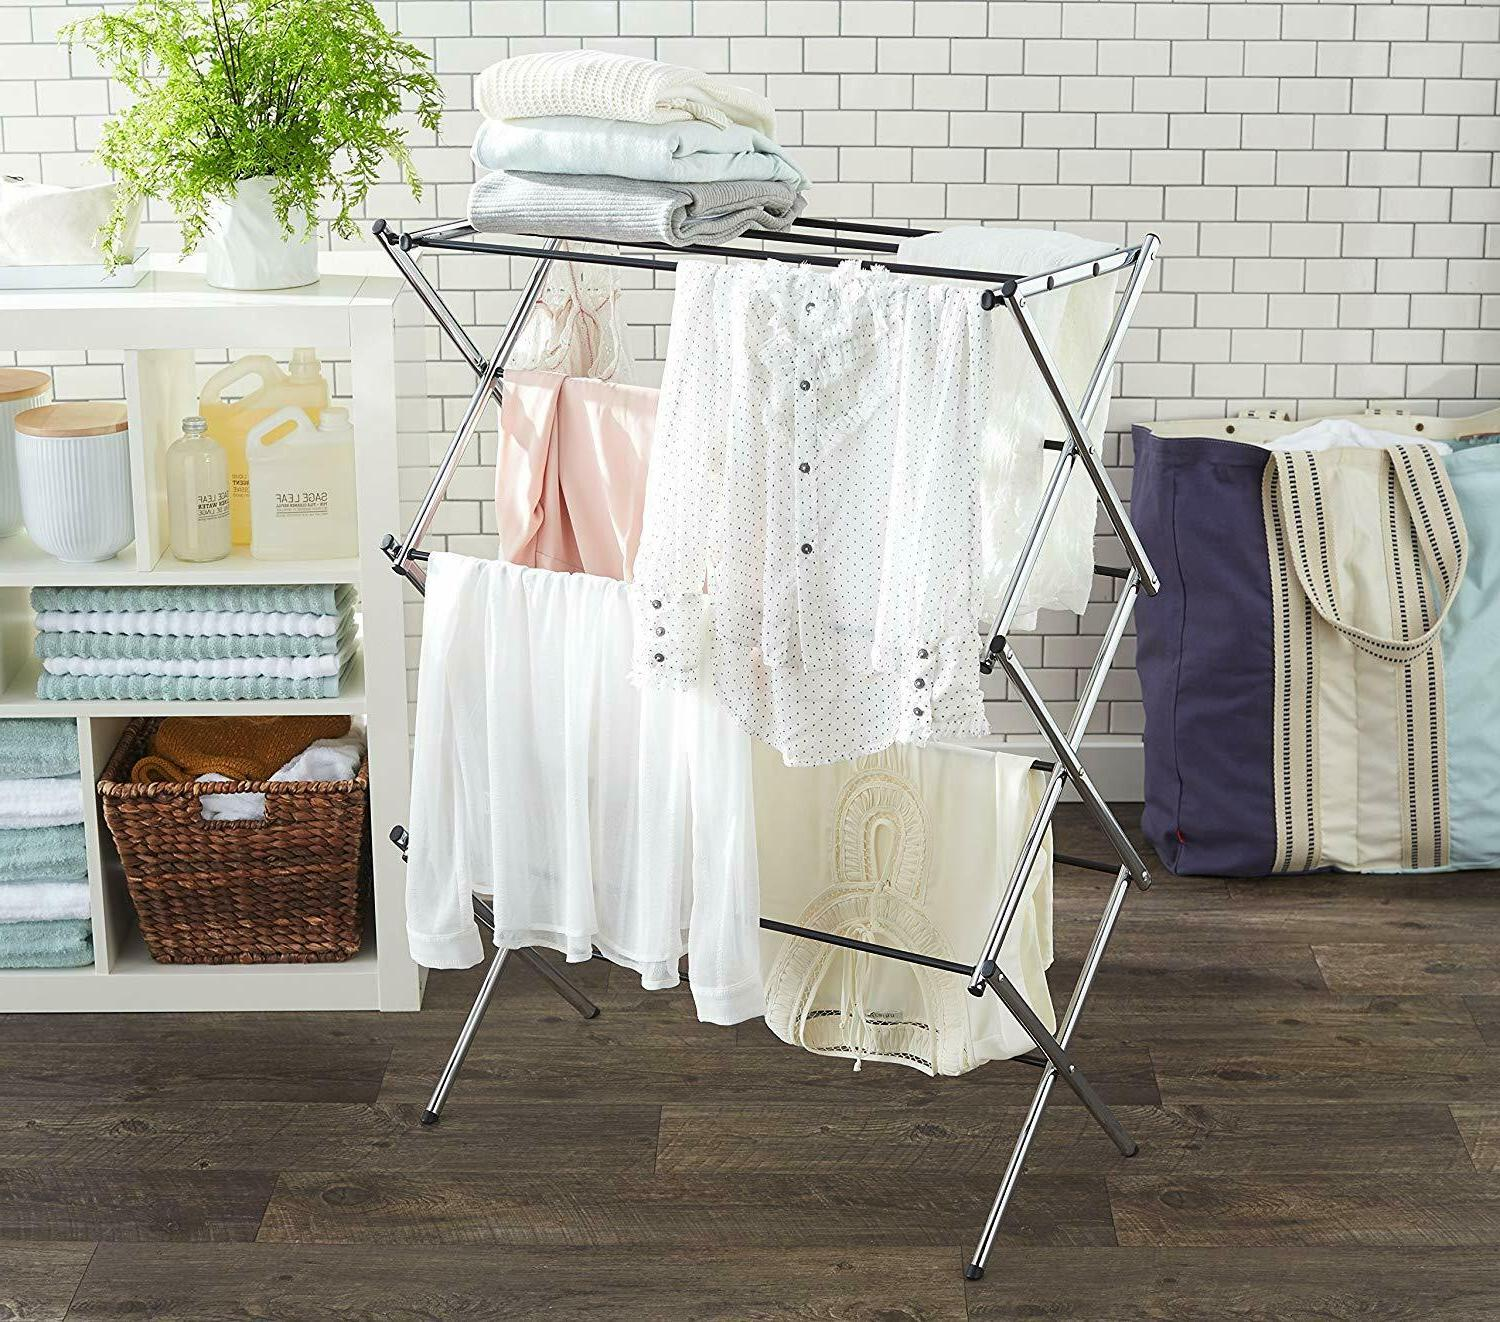 AmazonBasics Foldable Laundry Rack